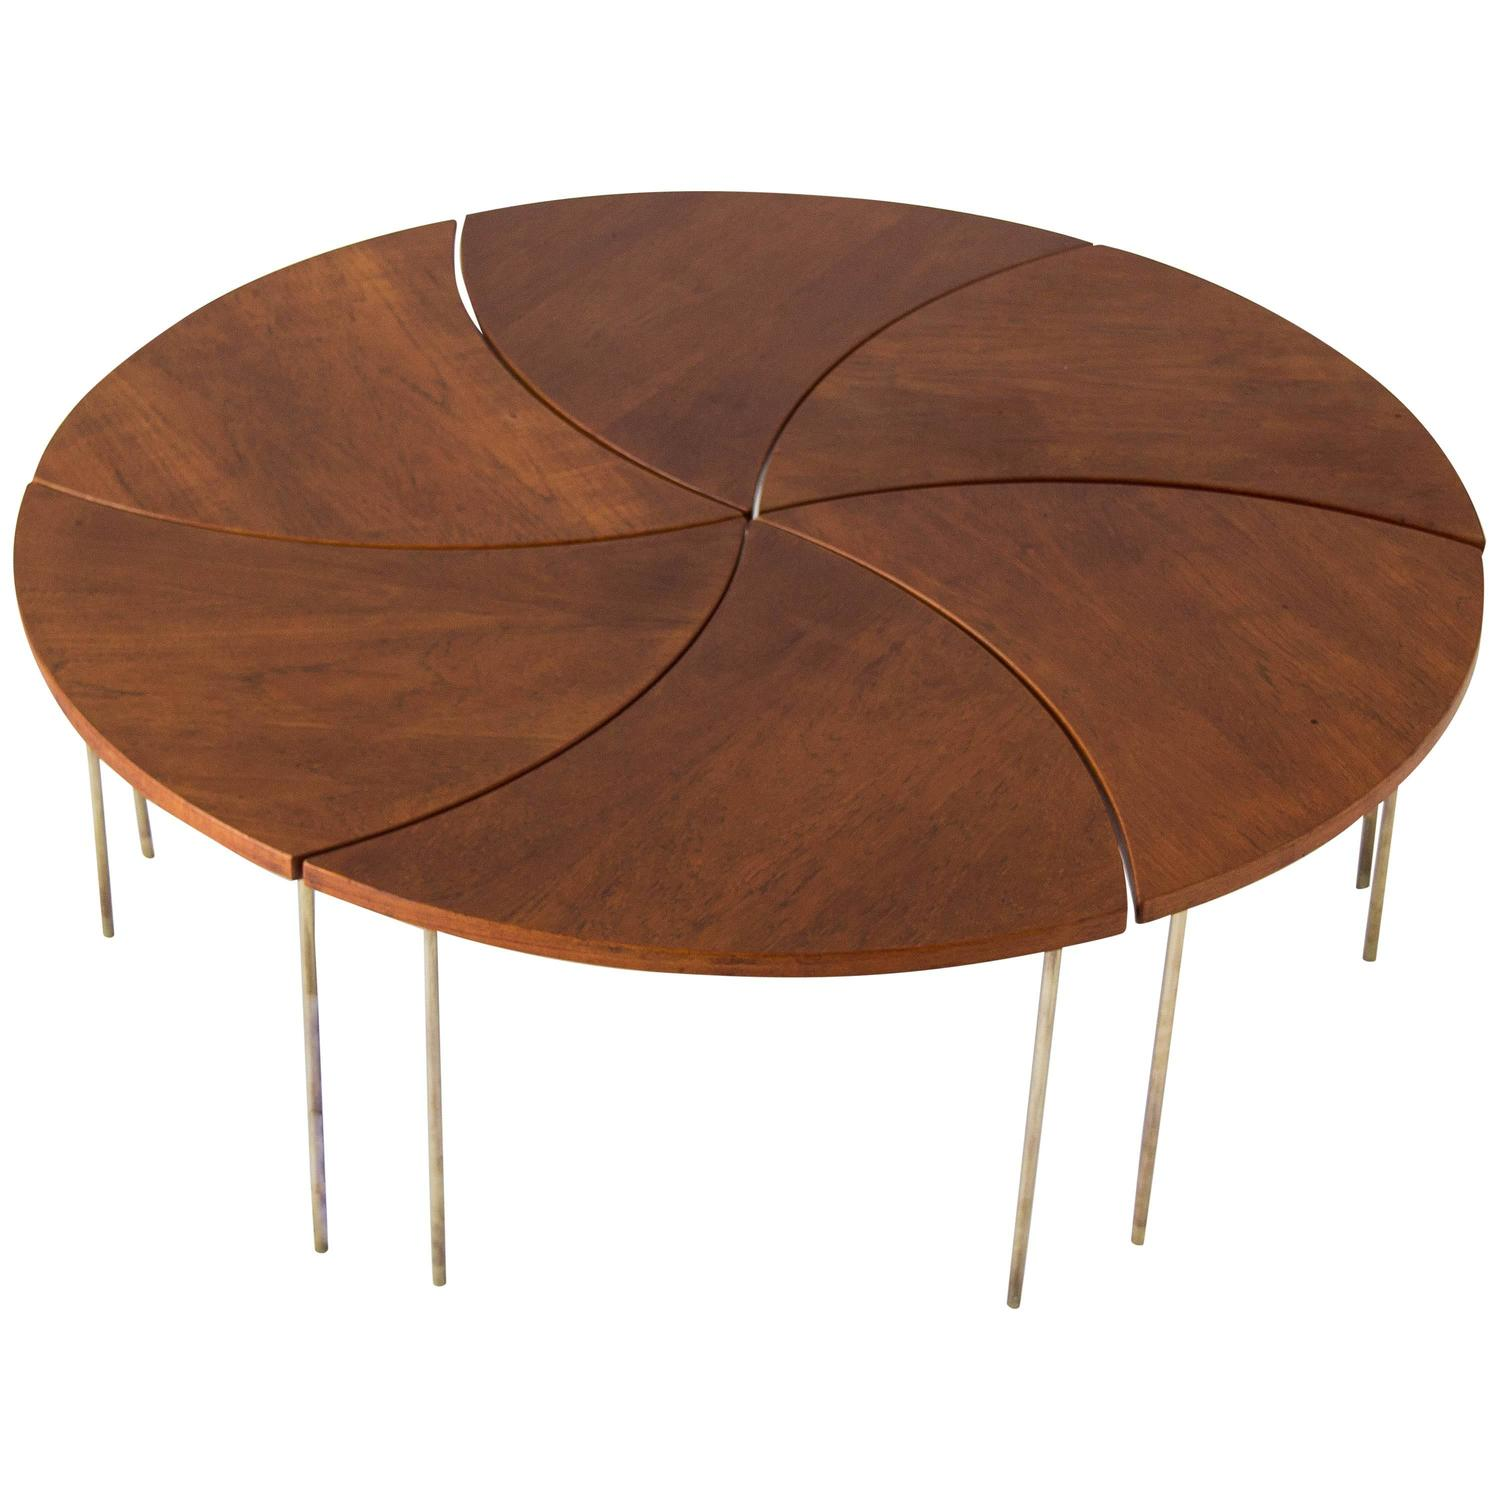 Modular Coffee Table by Peter Hvidt and Orla M¸lgaard Nielsen at